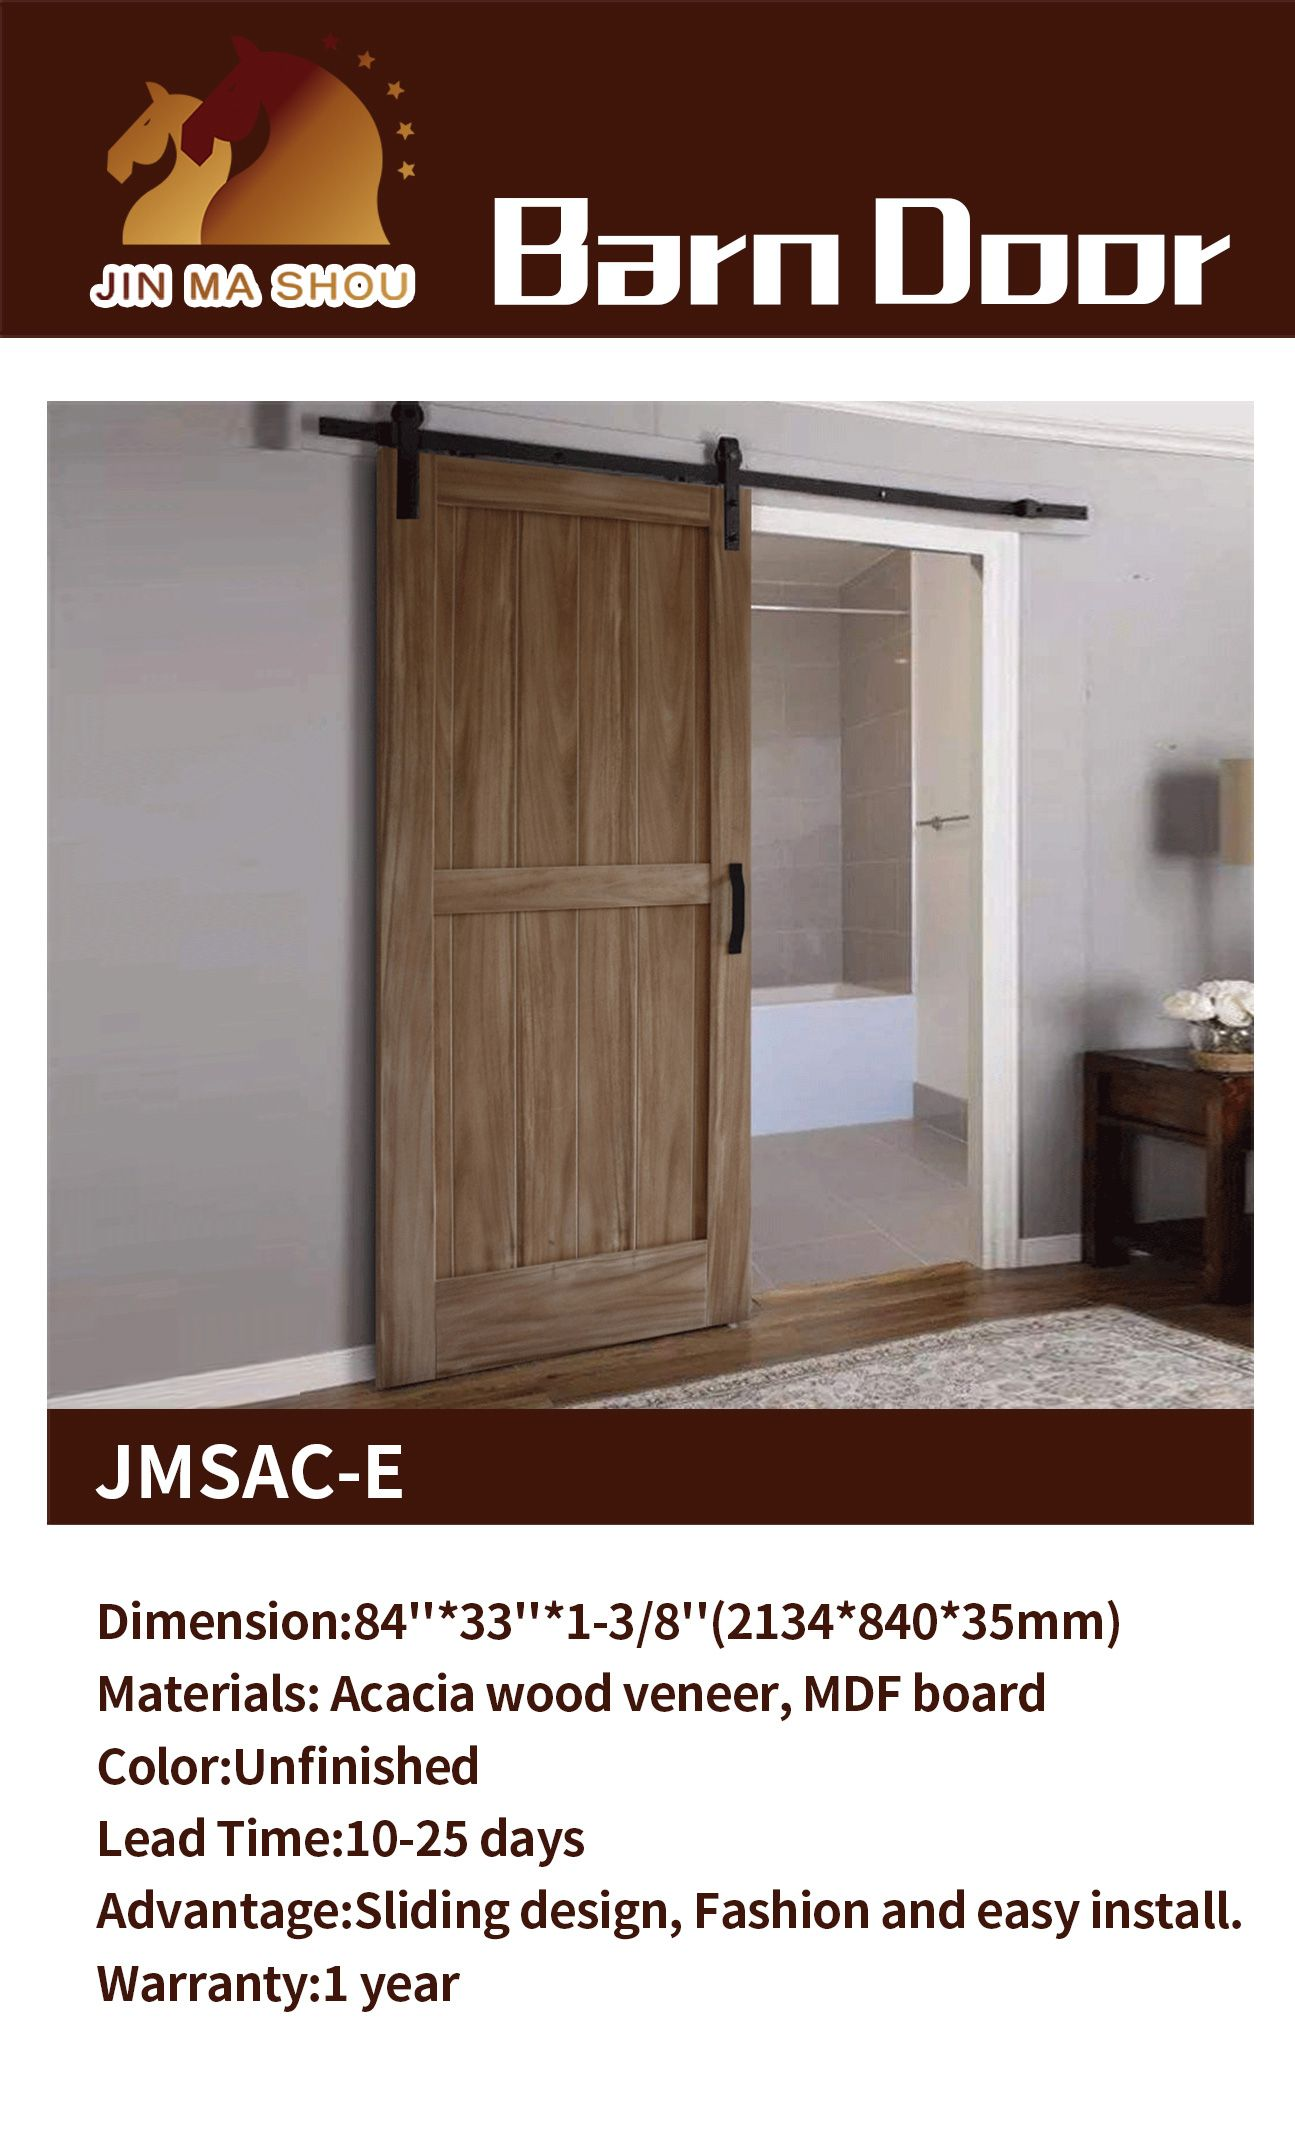 China Manufacturer Shandong Jinmashou Produces Fsliding Barn Door For Many Kinds Of Doors Made By Defferent Barn Door Tall Cabinet Storage Sliding Barn Door